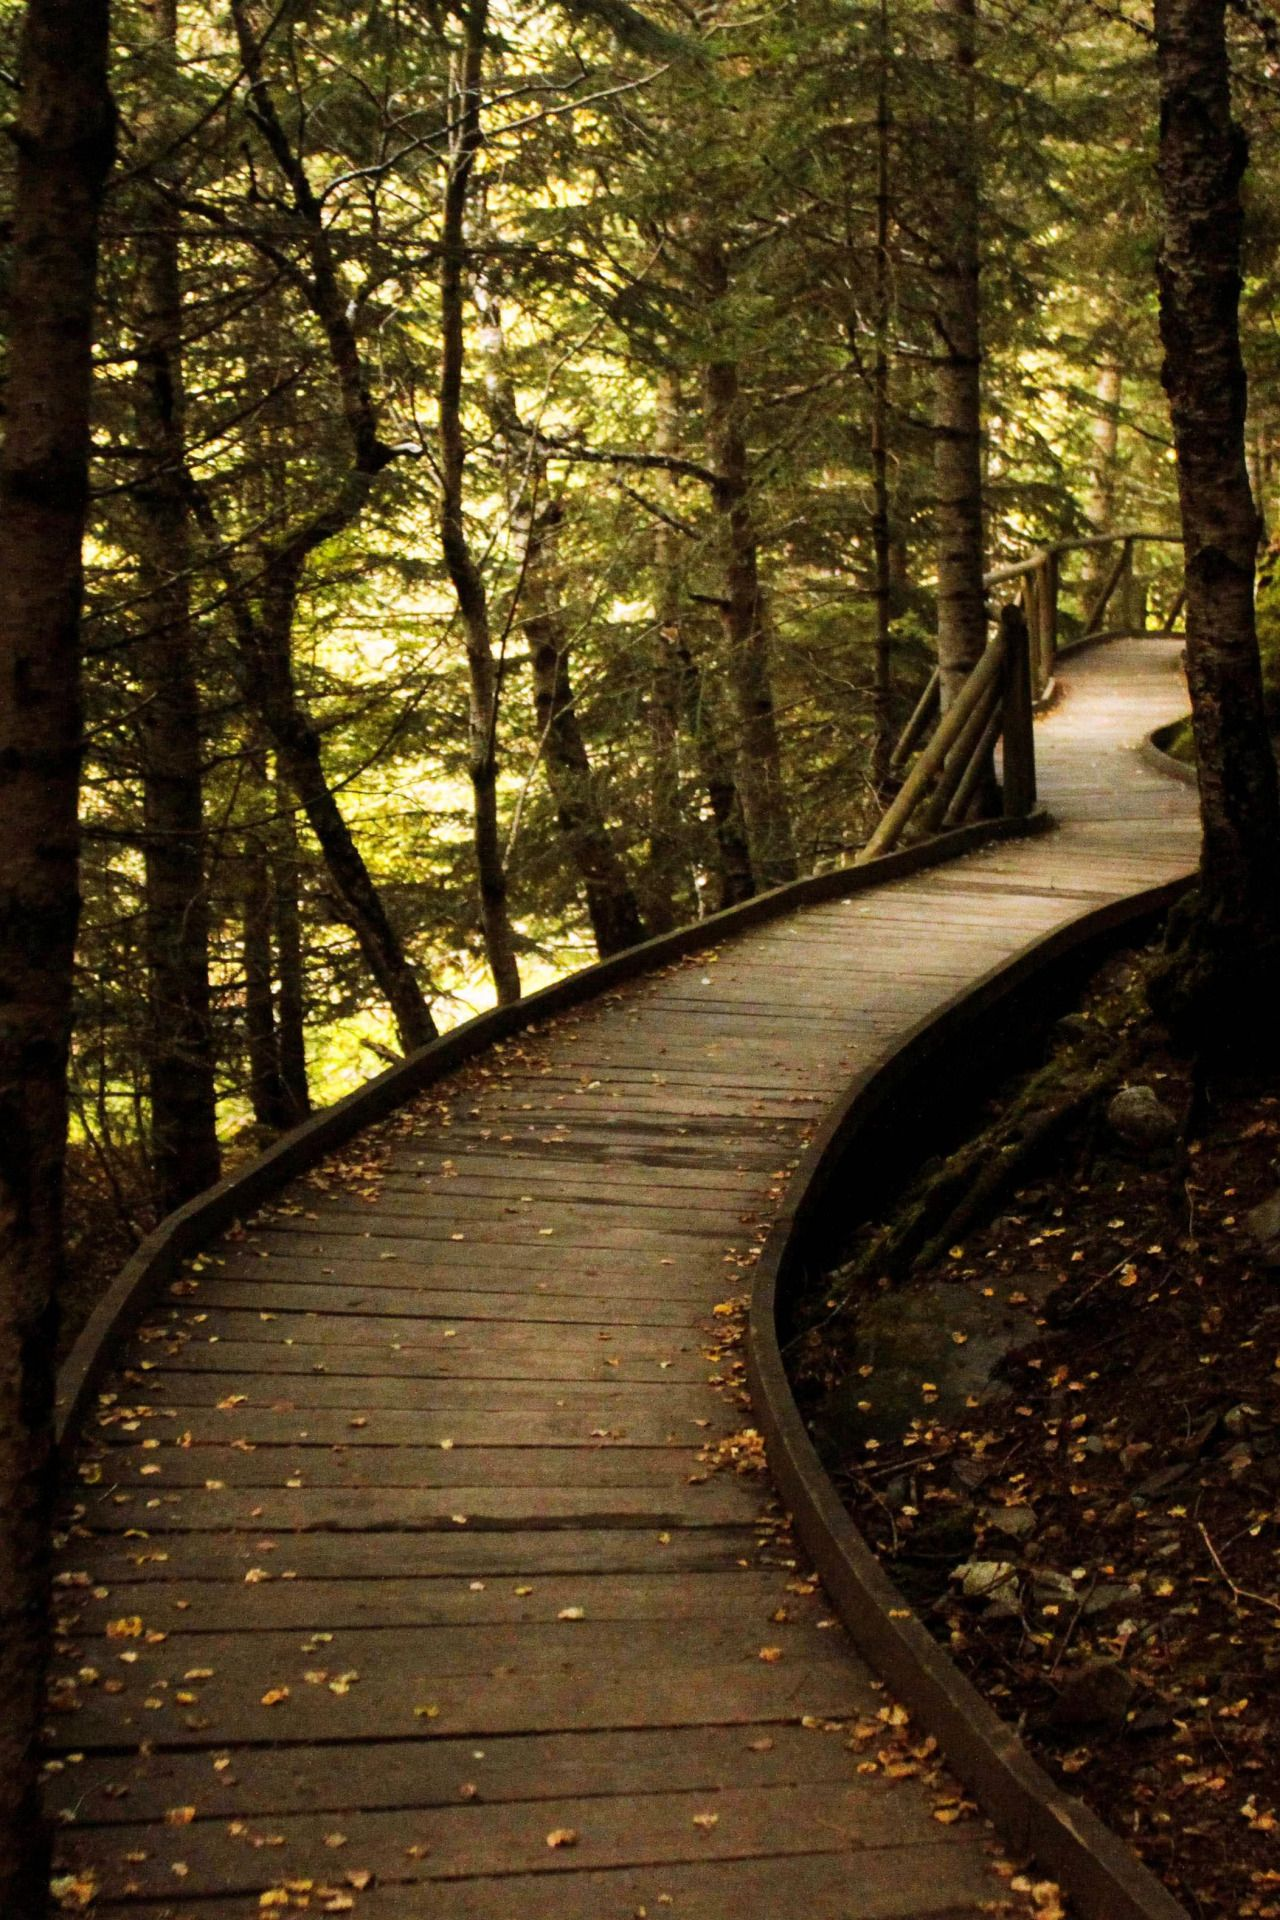 Pin by Gwen Marcy on forestcore   Nature aesthetic, Nature